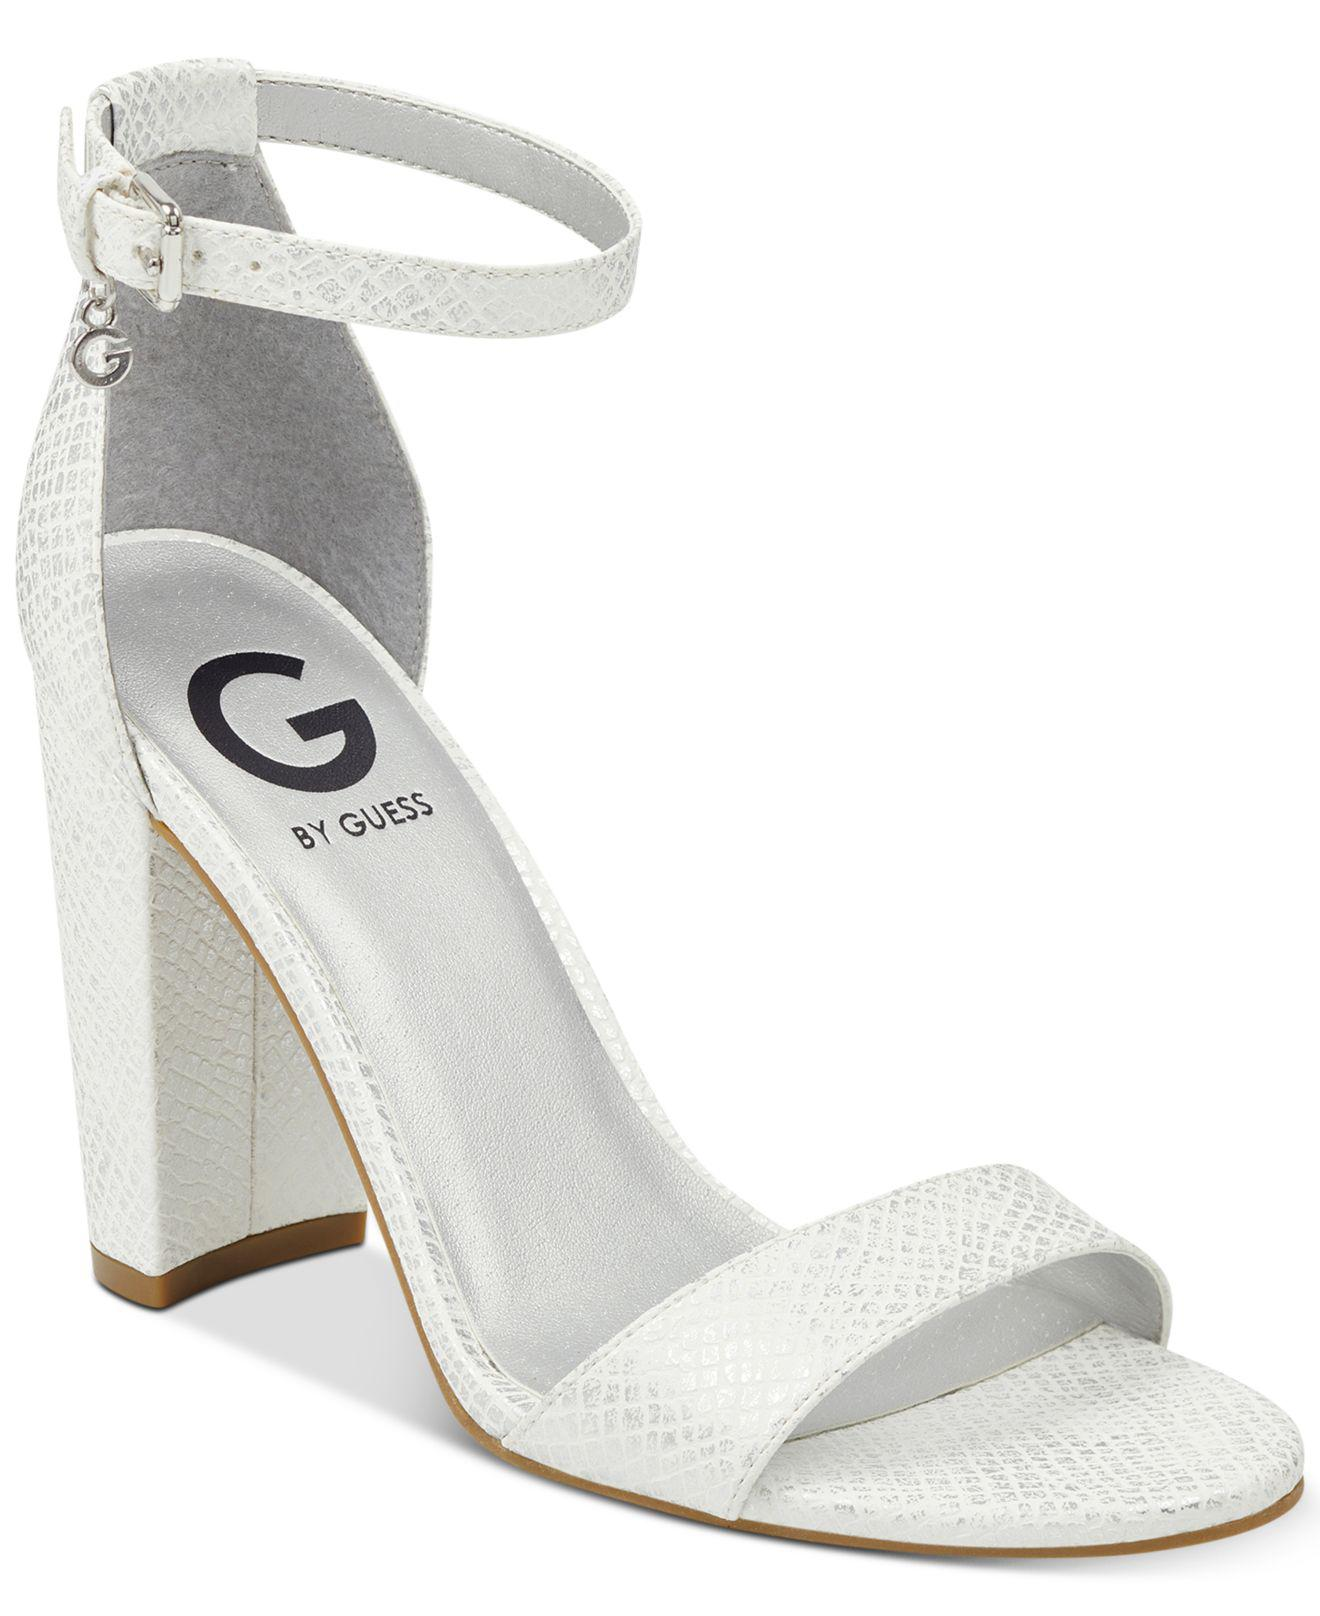 8740cfaf382 Lyst - G by Guess Shantel Two-piece Sandals in White